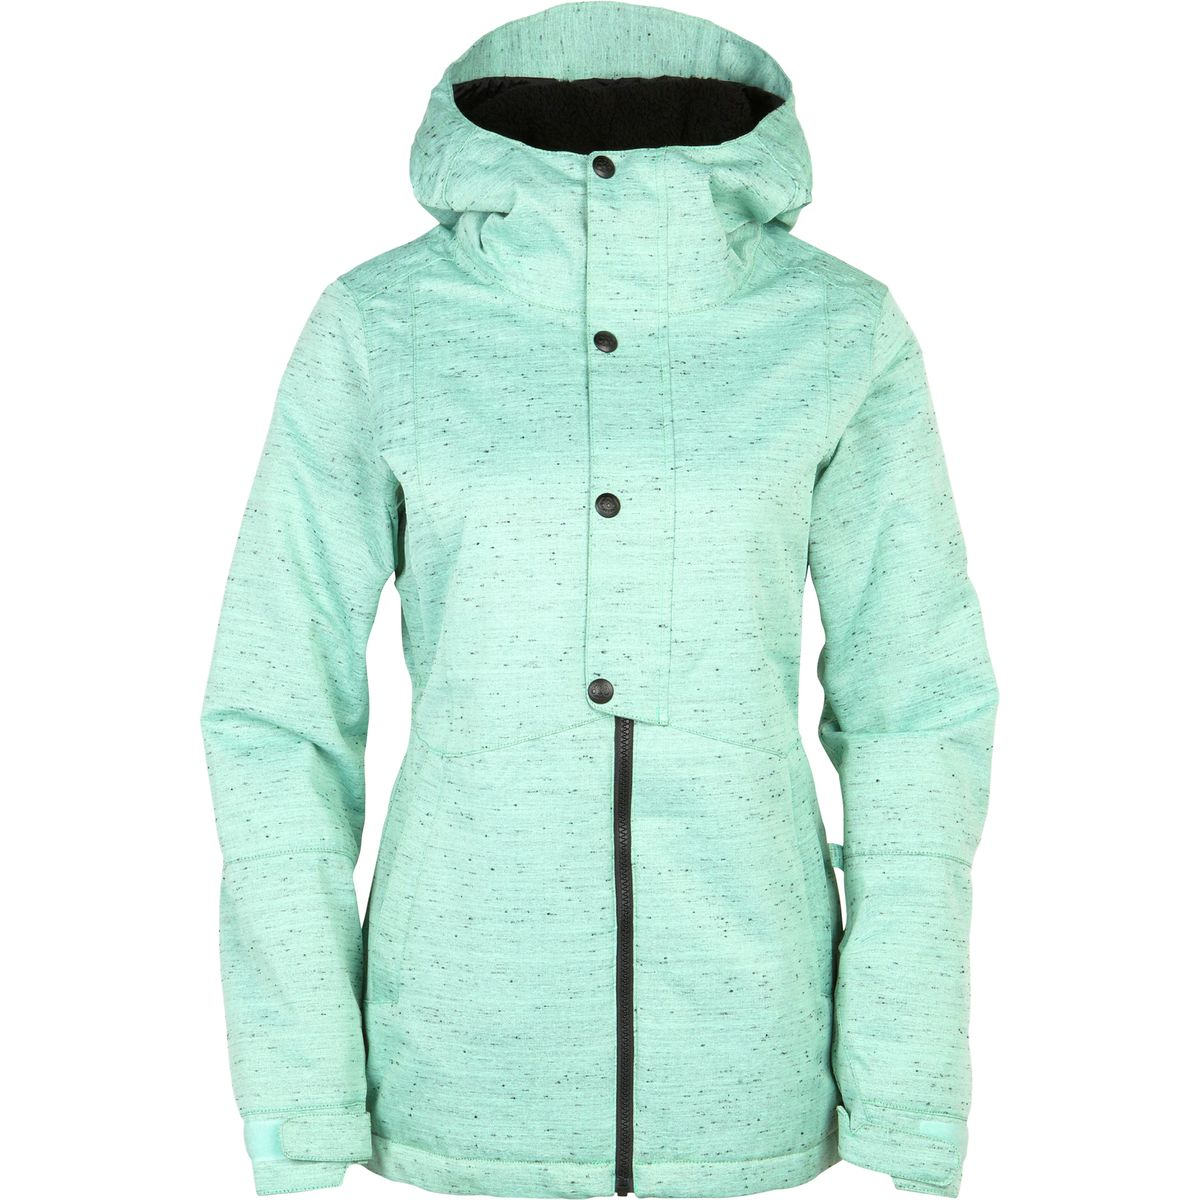 686 Authentic Rumor Insulated Jacket - Women